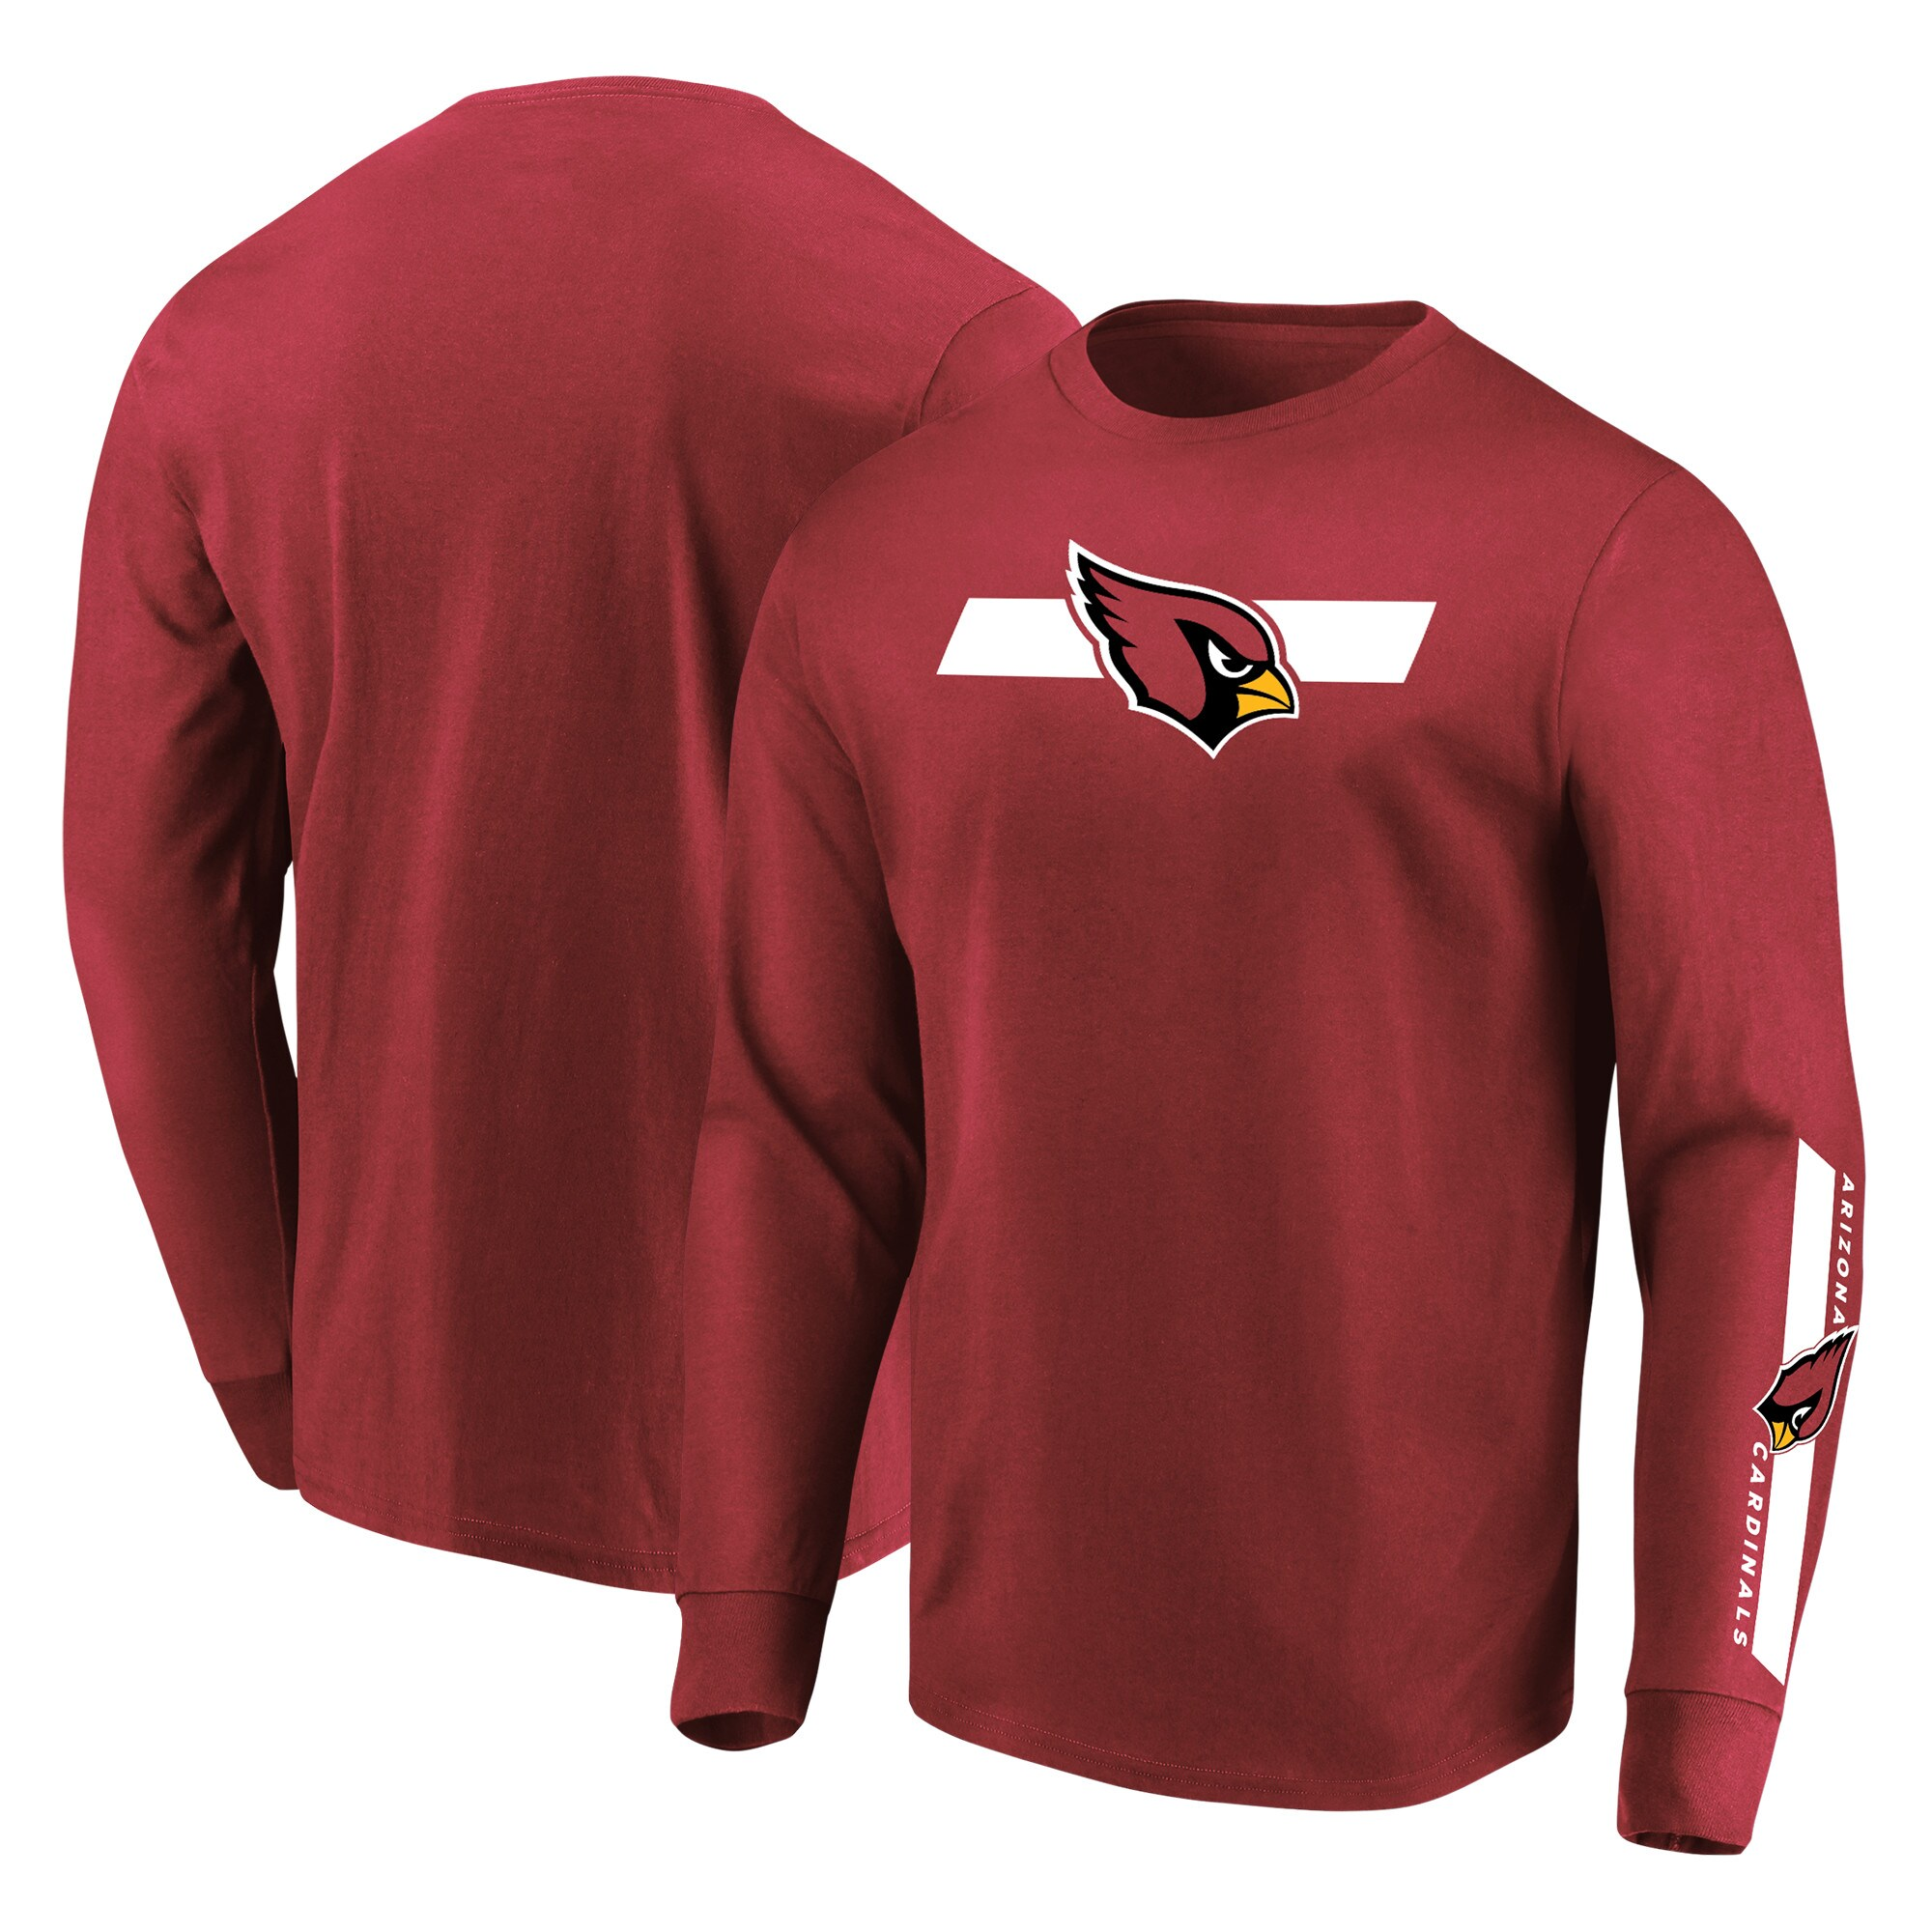 Arizona Cardinals Majestic Big & Tall Dual Threat Long Sleeve T-Shirt - Cardinal